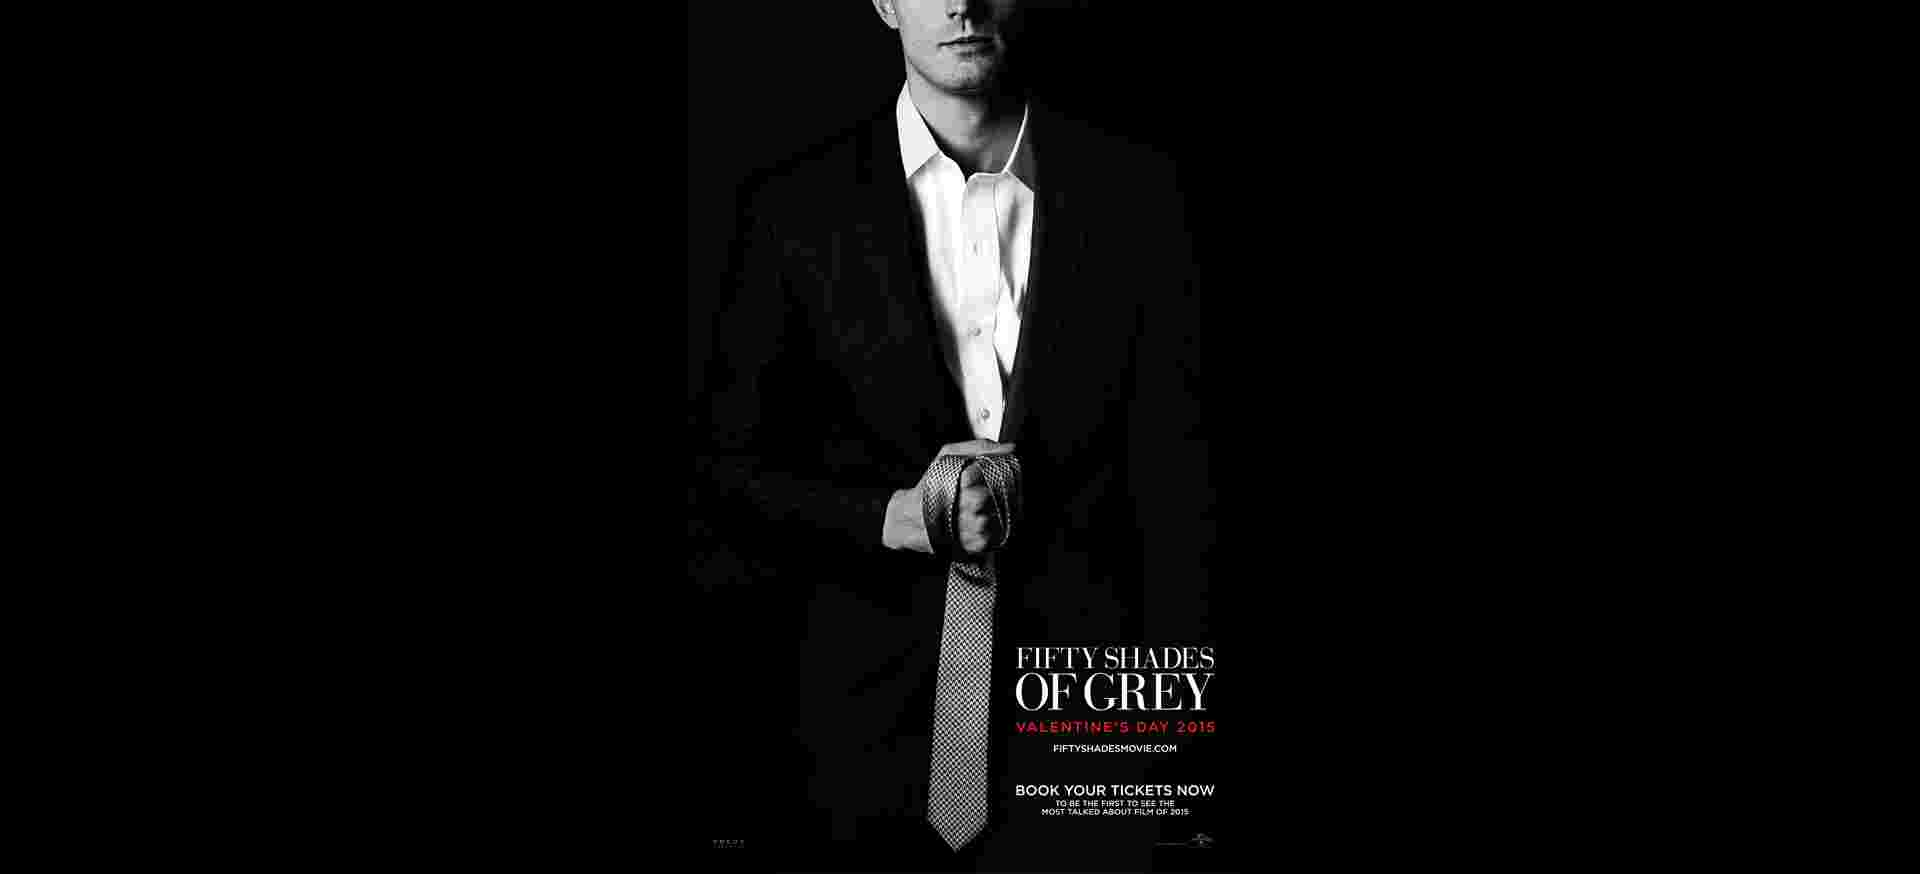 Fifty-Shades-Of-Grey-Gallery-08